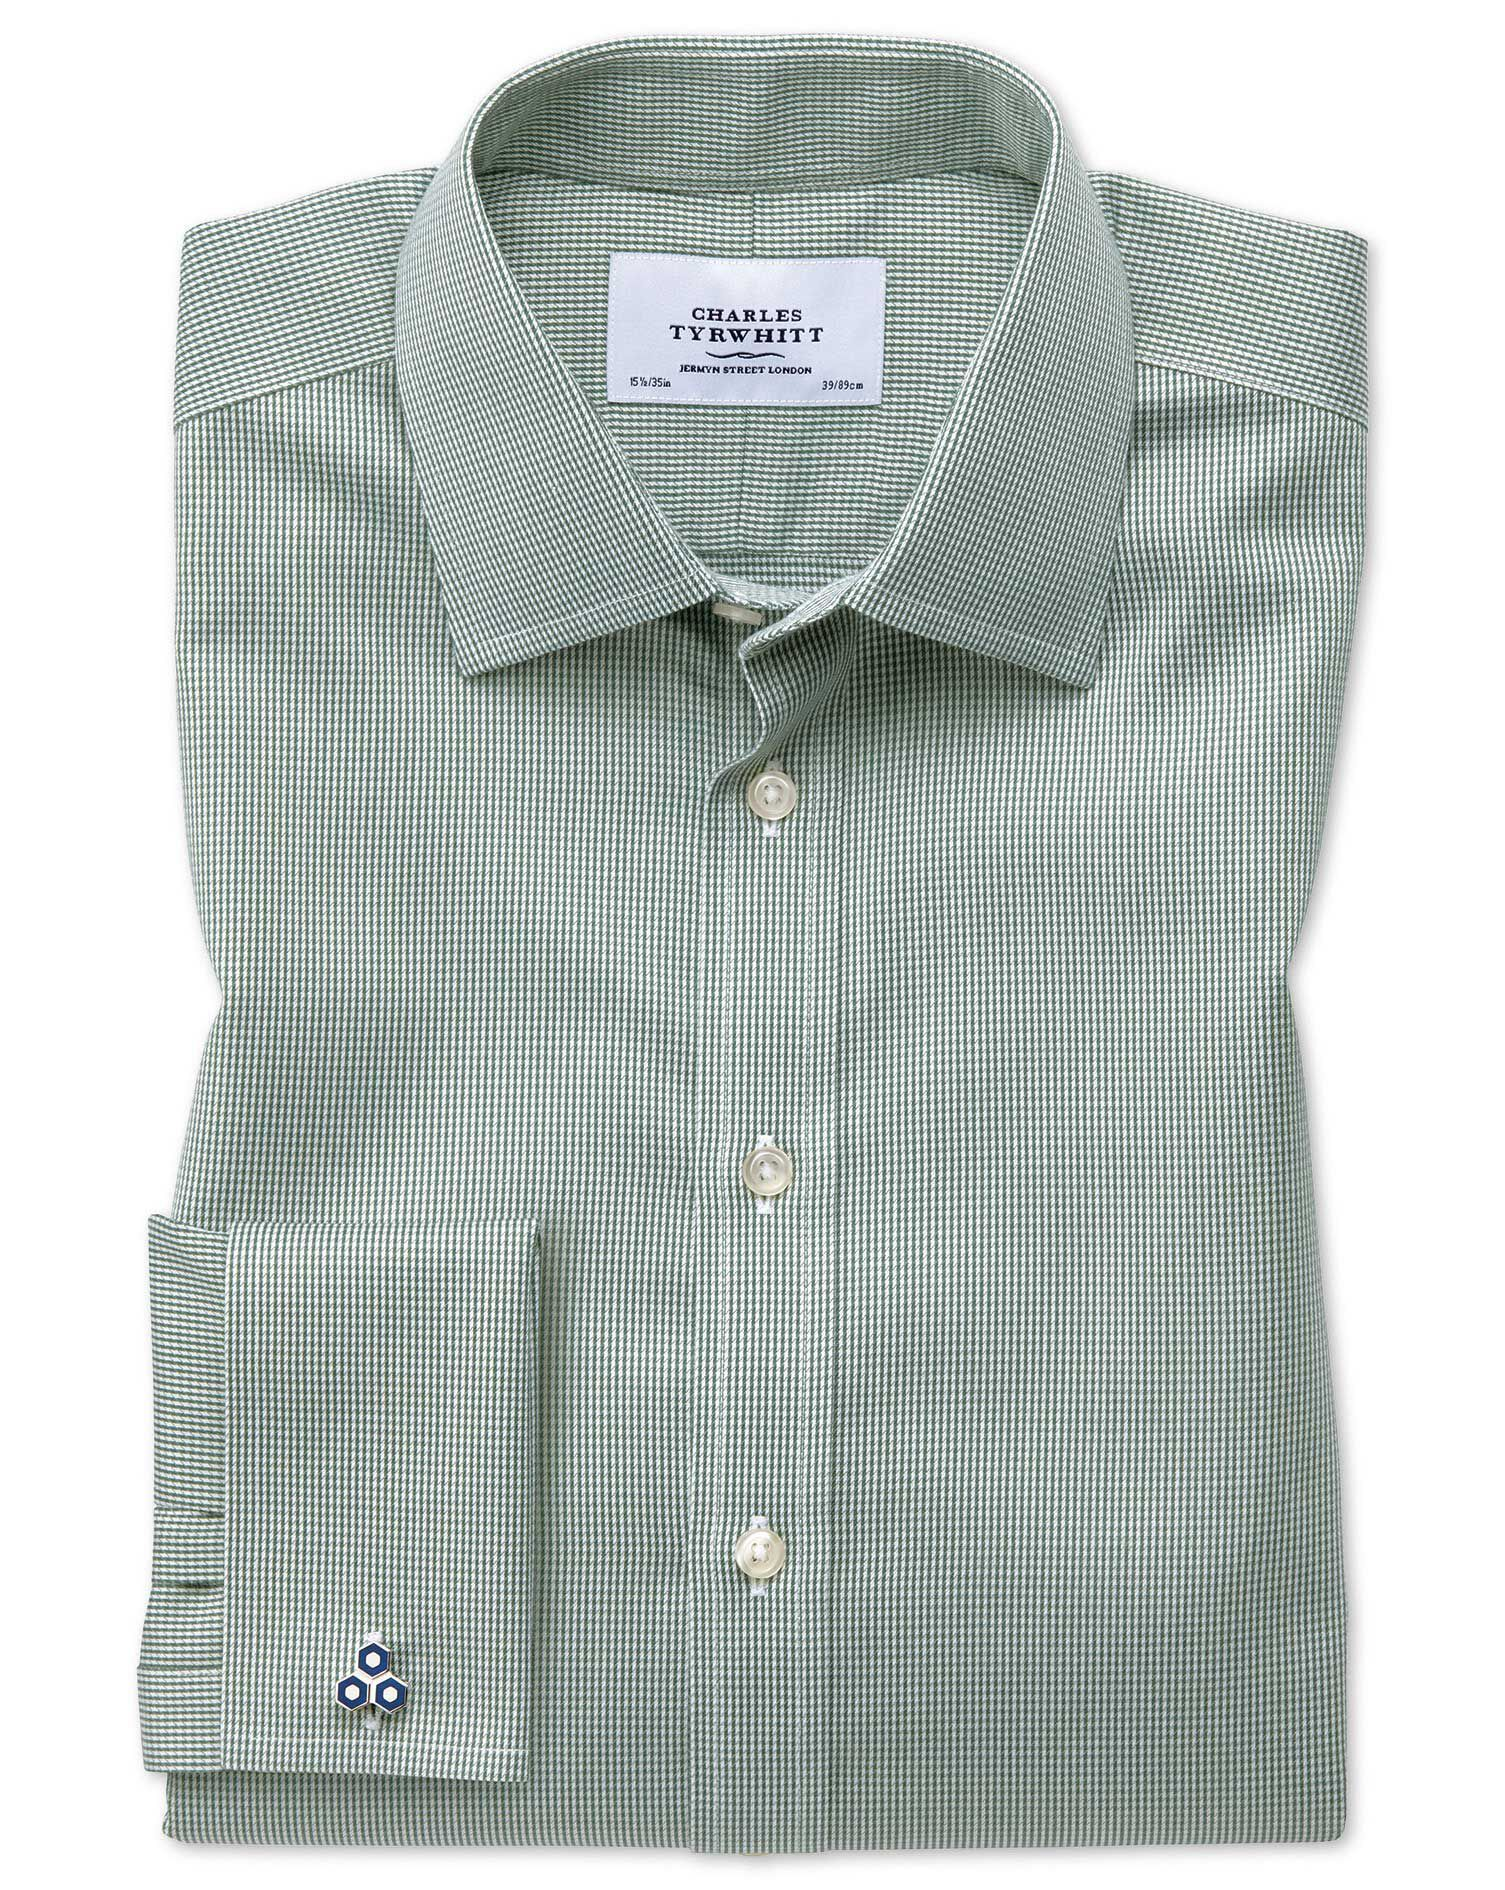 Classic Fit Non-Iron Puppytooth Olive Green Cotton Formal Shirt Double Cuff Size 15.5/33 by Charles